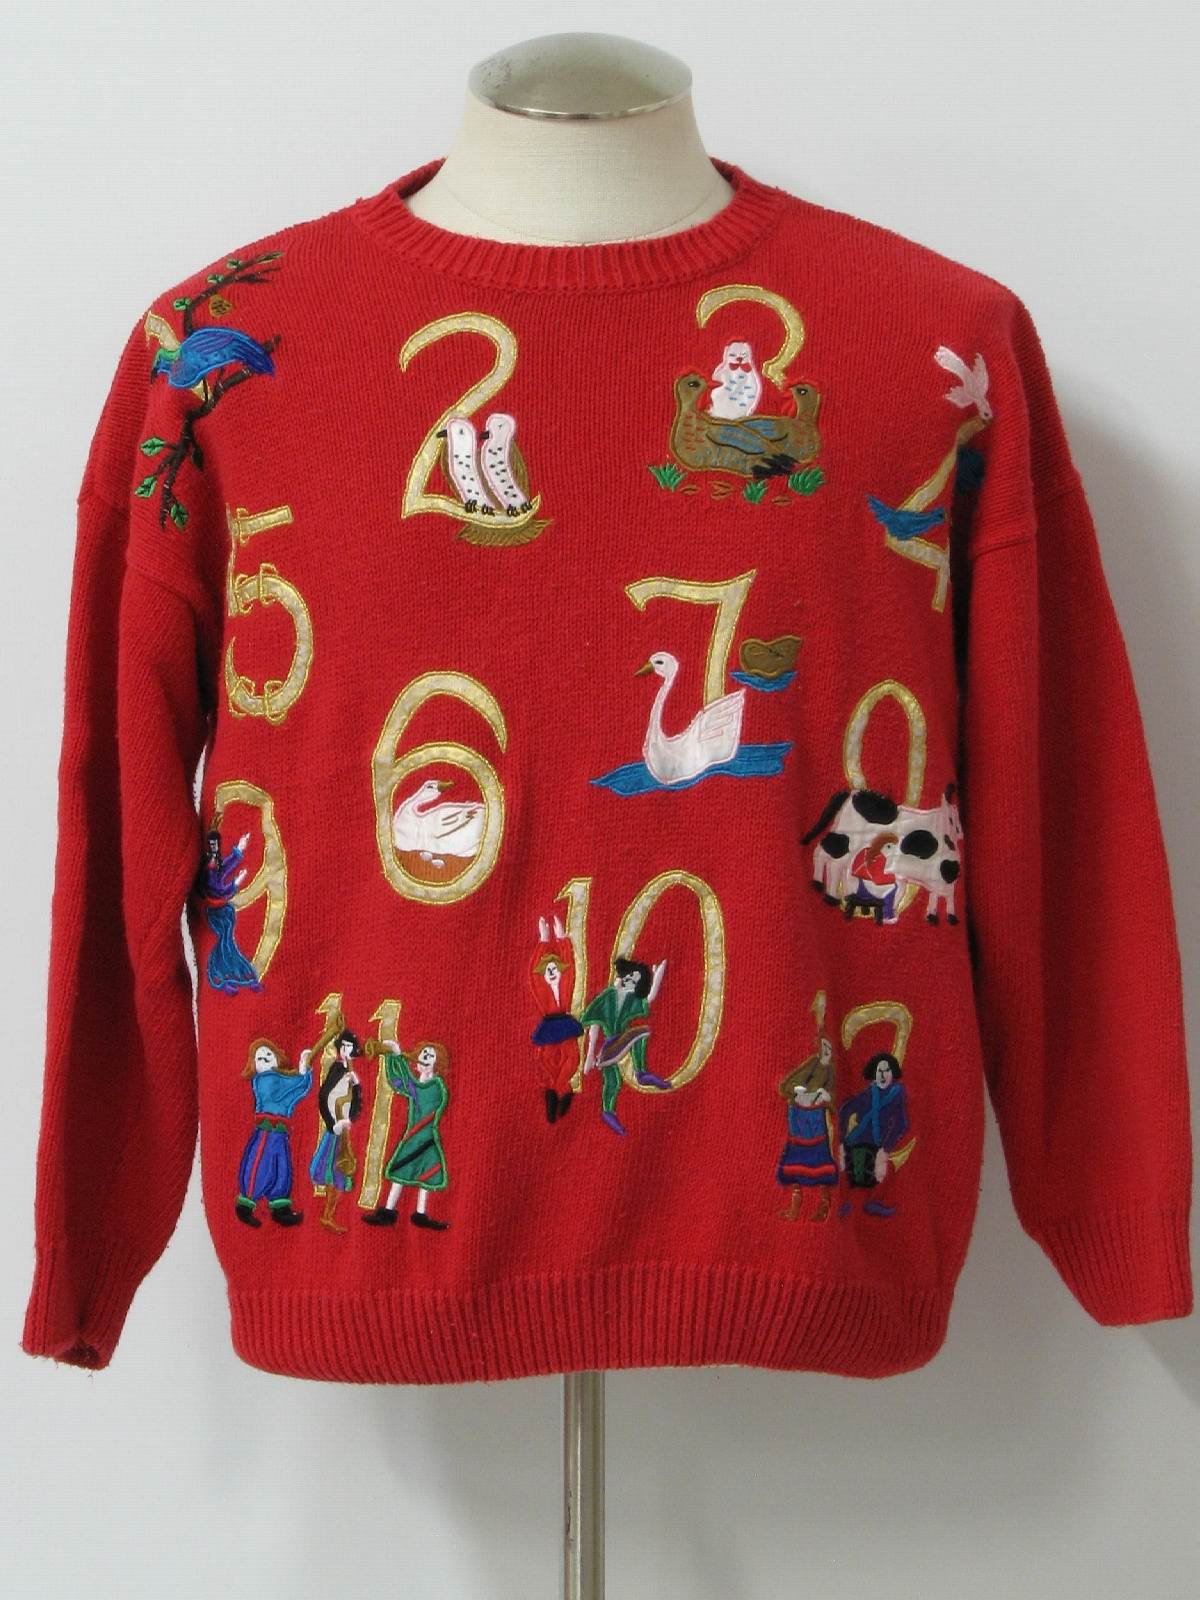 12 Days Of Ugly Christmas Sweater Retro Look Tally Ho Unisex Red